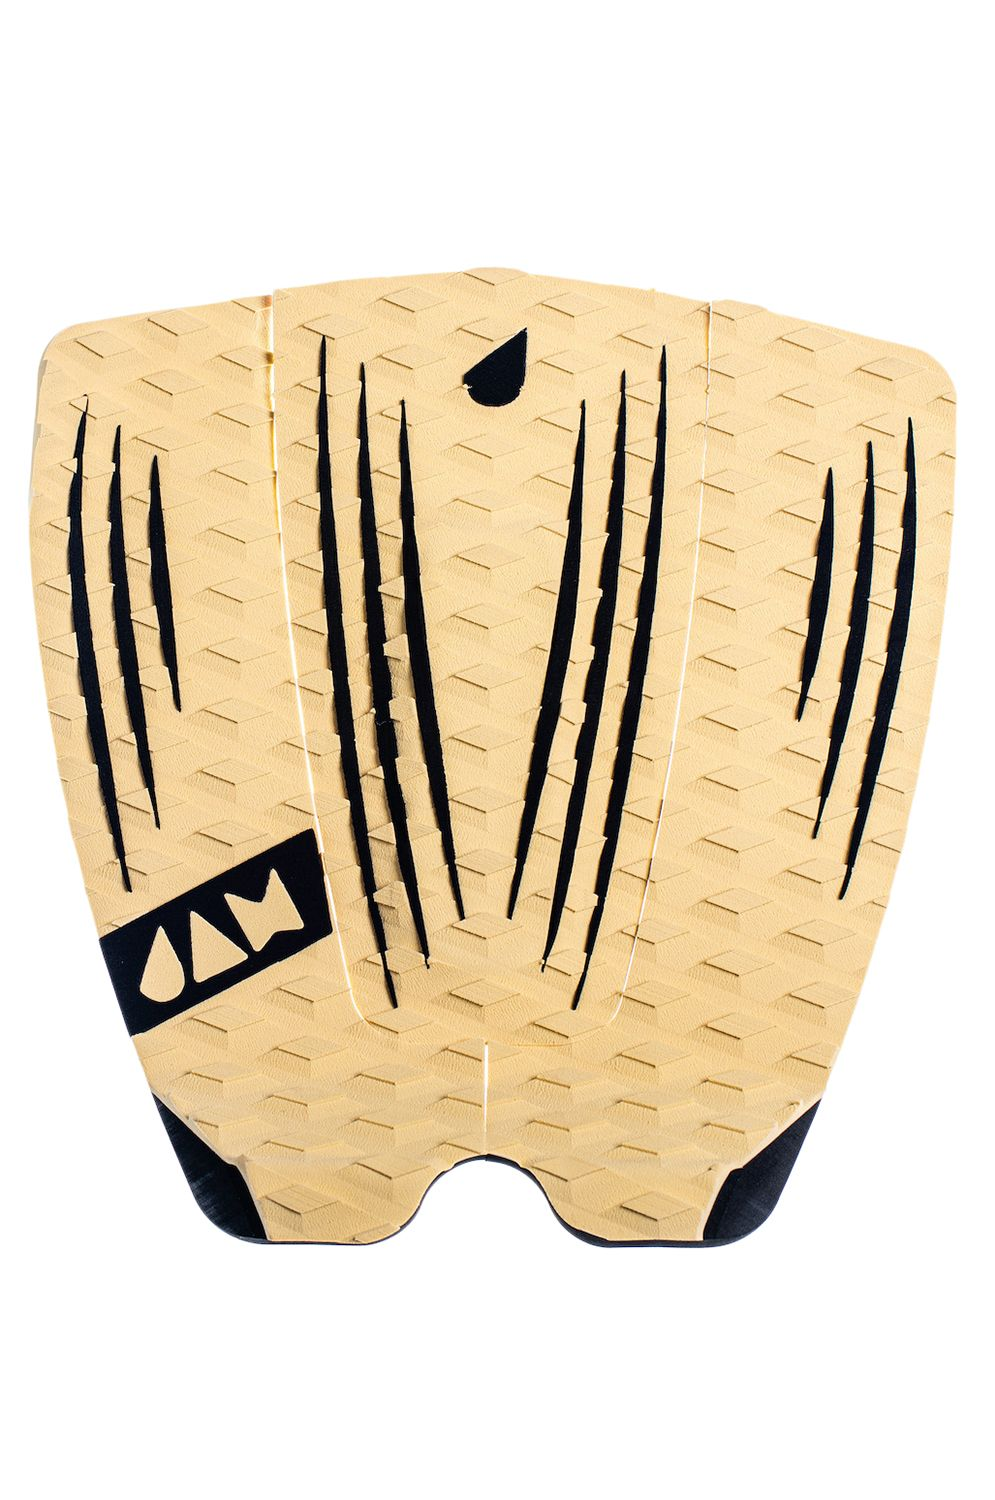 Jam Deck RECKLESS 3 PIECE TRACTION PAD Brown/Black Stripes